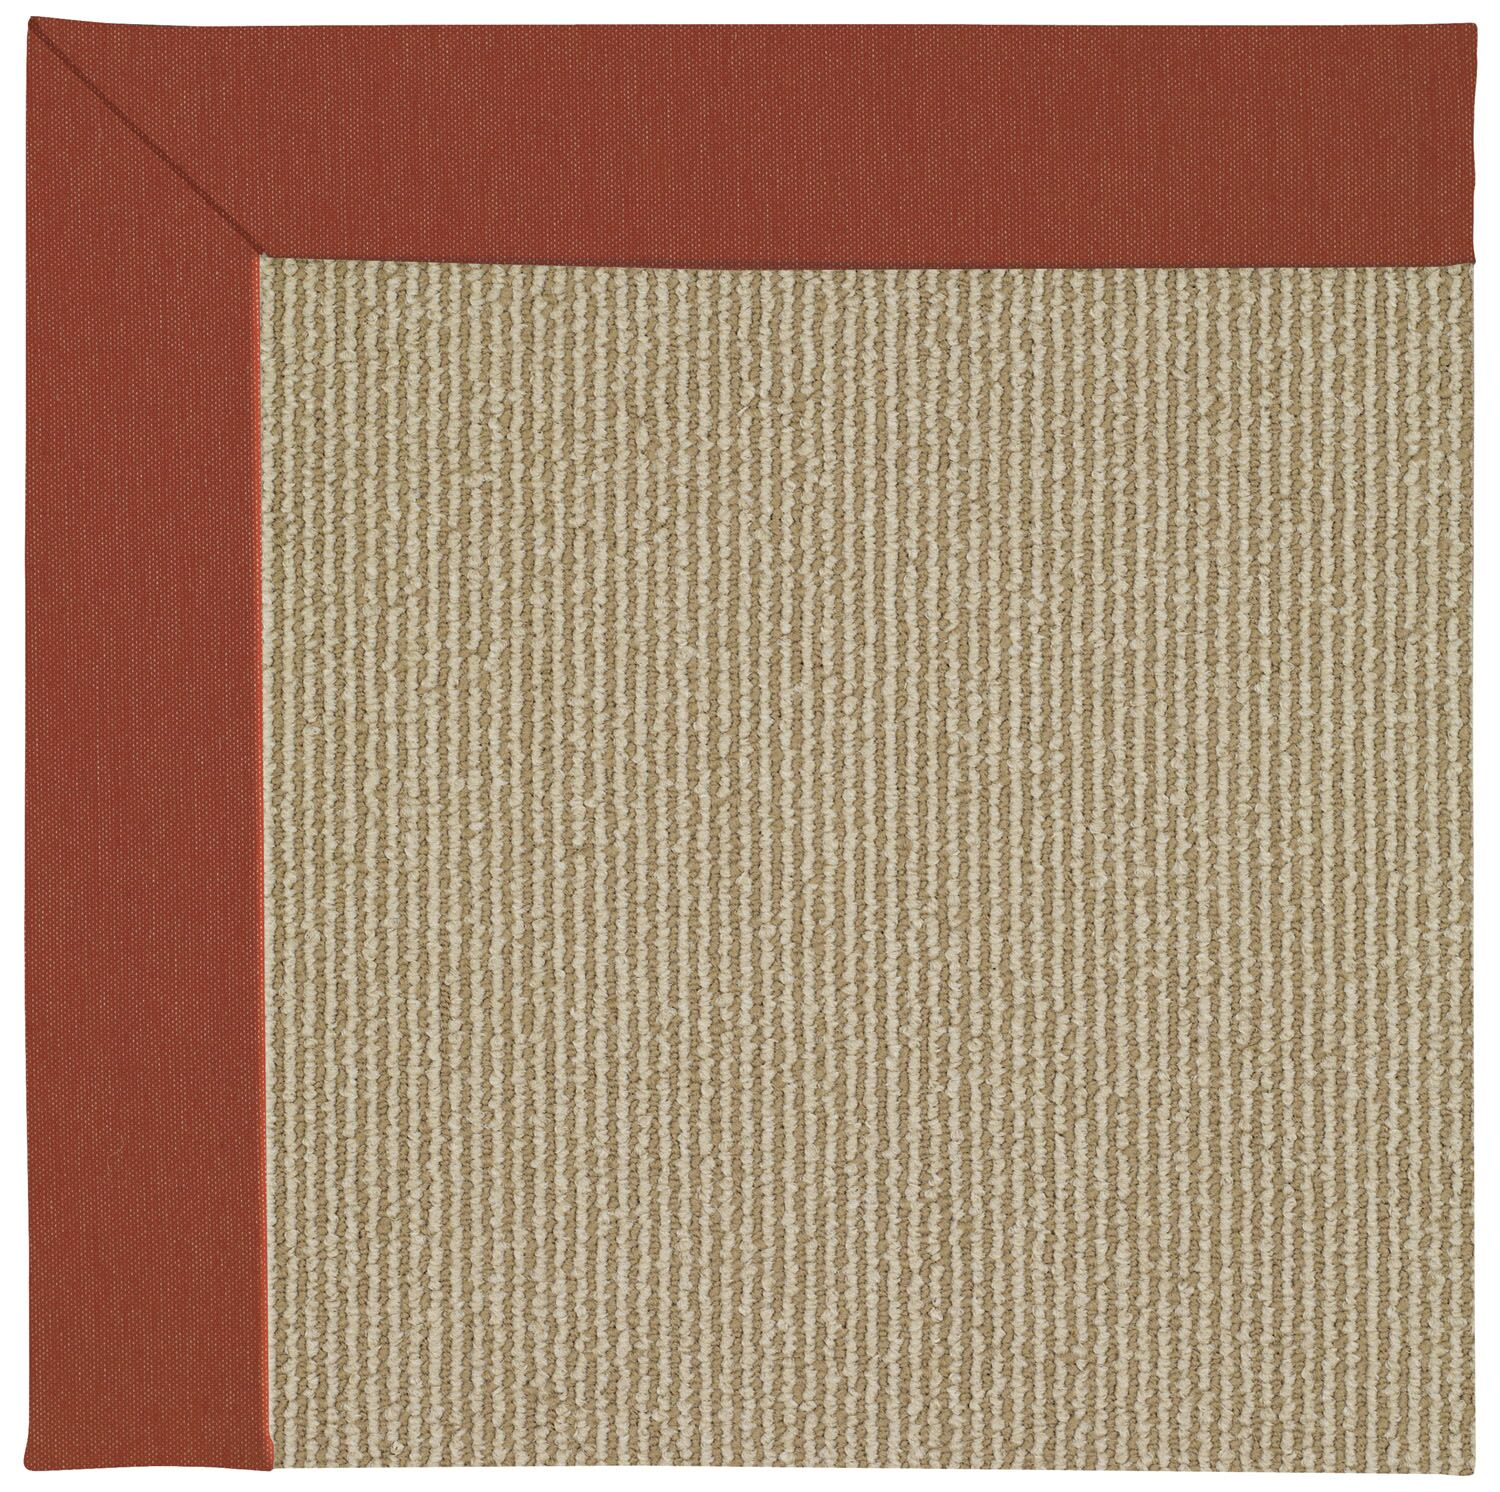 Lisle Machine Tufted Strawberry/Brown Indoor/Outdoor Area Rug Rug Size: Rectangle 9' x 12'